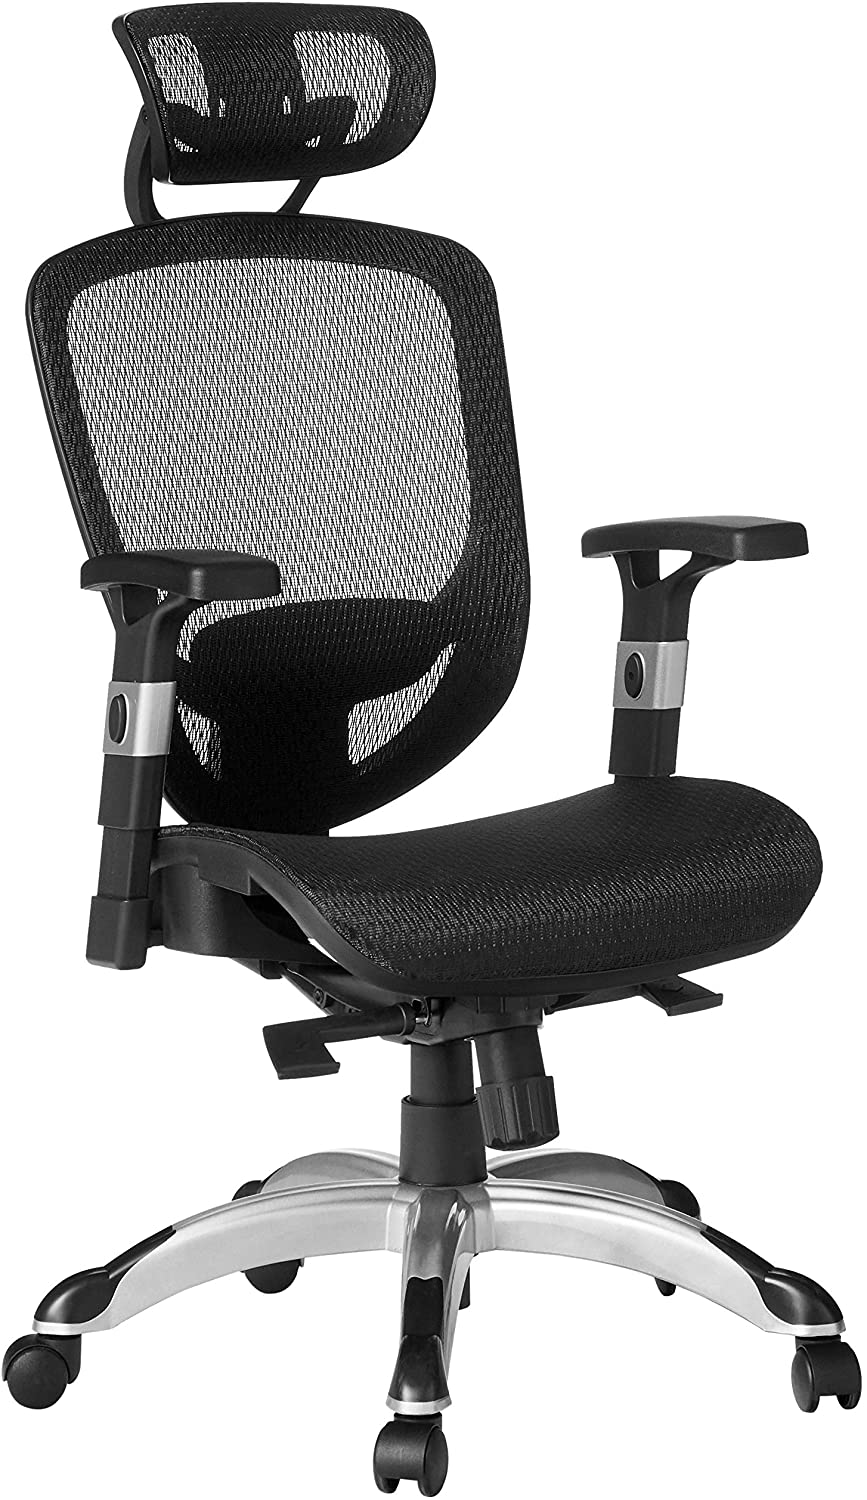 Staples Hyken Mesh Task Chair, Black (23481-CC)